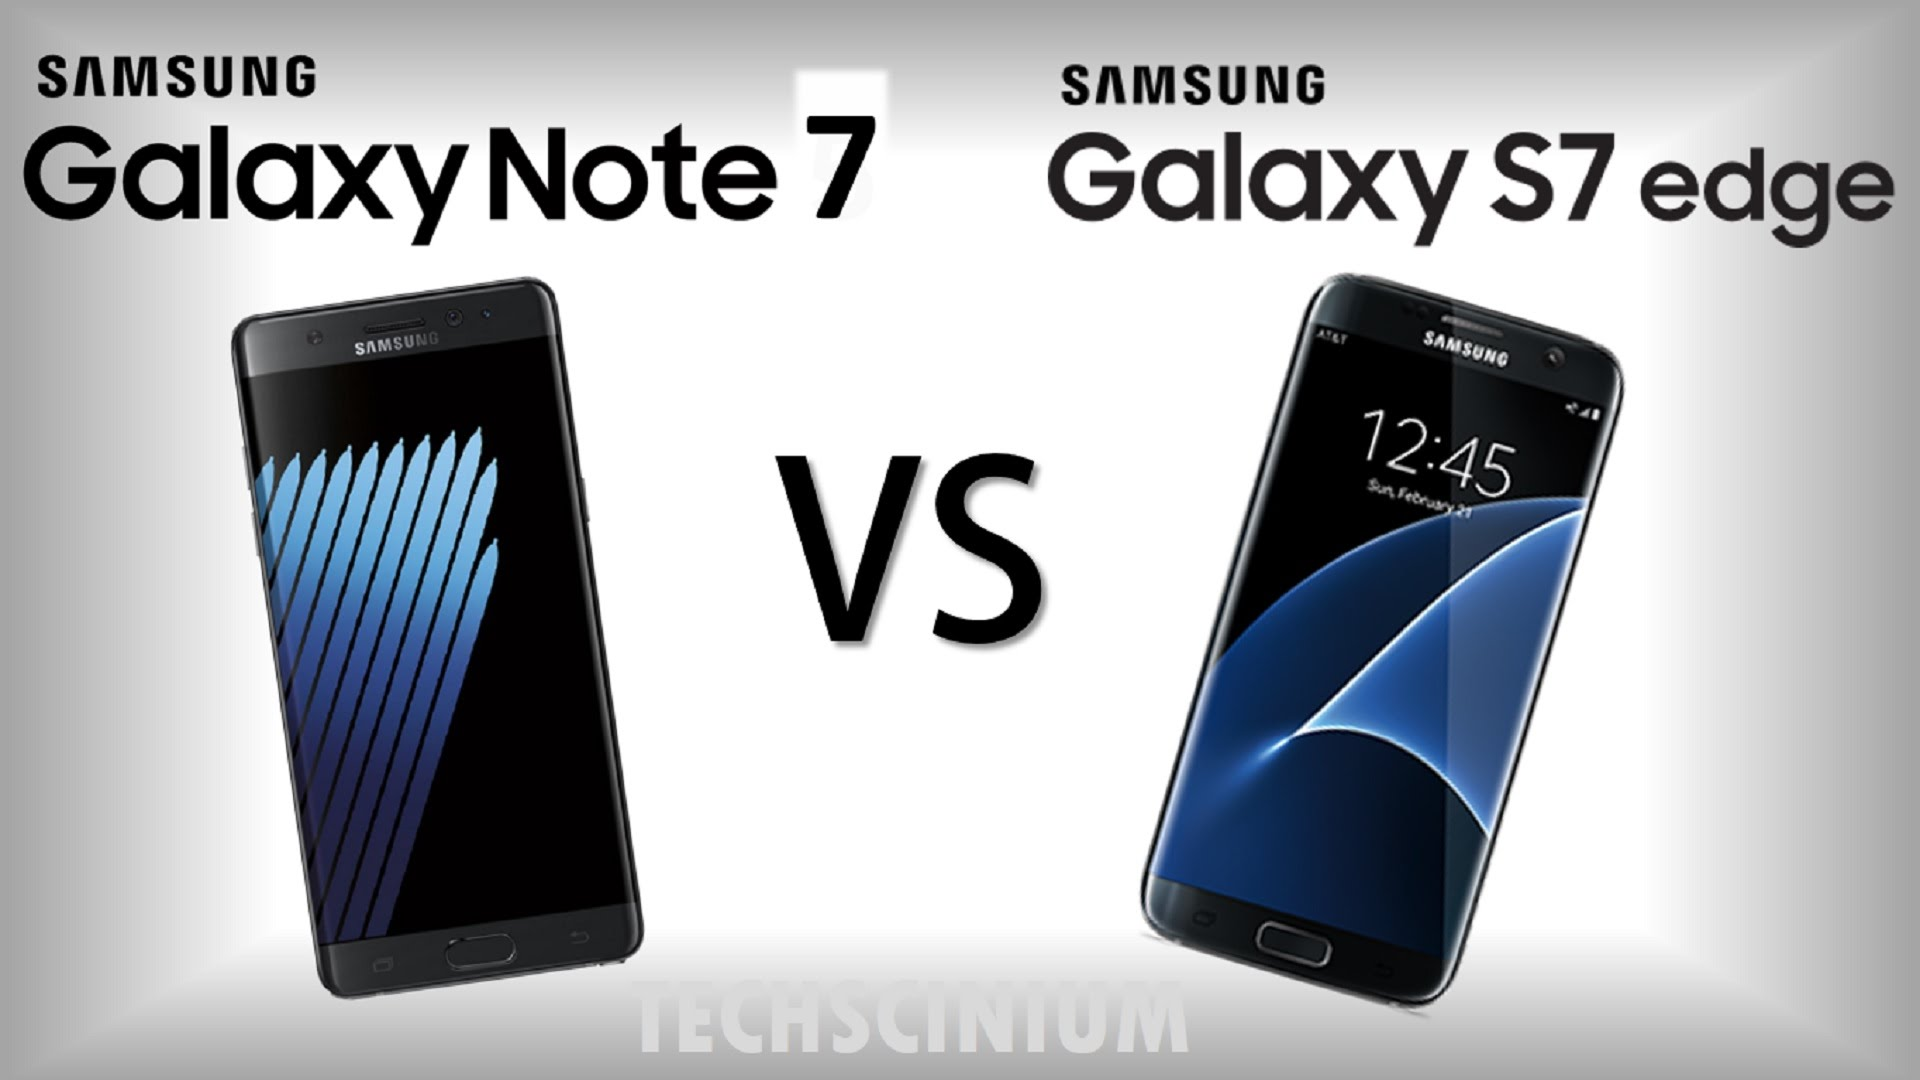 So găng Galaxy Note7 với S7 edge